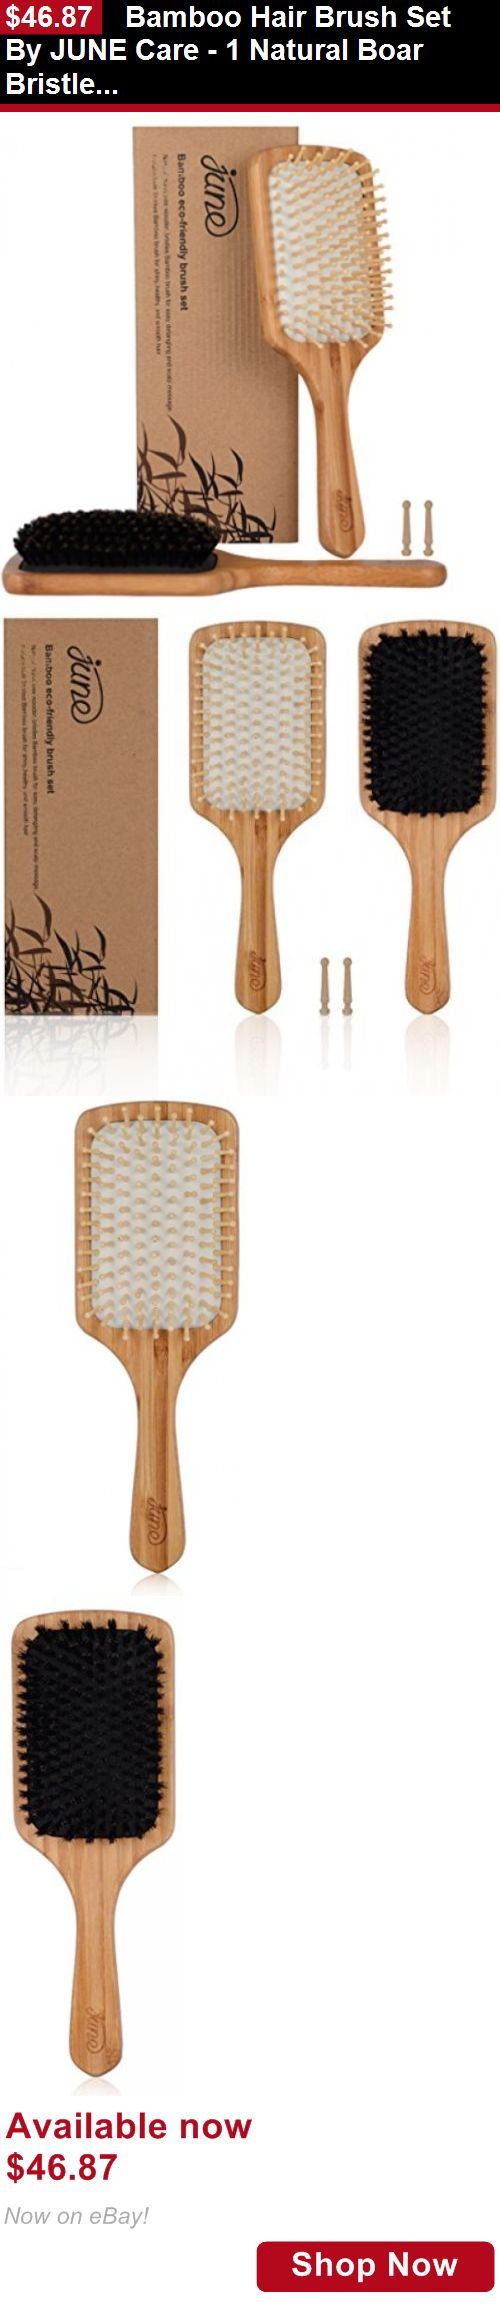 Baby Health And Grooming: Bamboo Hair Brush Set By June Care - 1 Natural Boar Bristle Hair Brush And 1 BUY IT NOW ONLY: $46.87